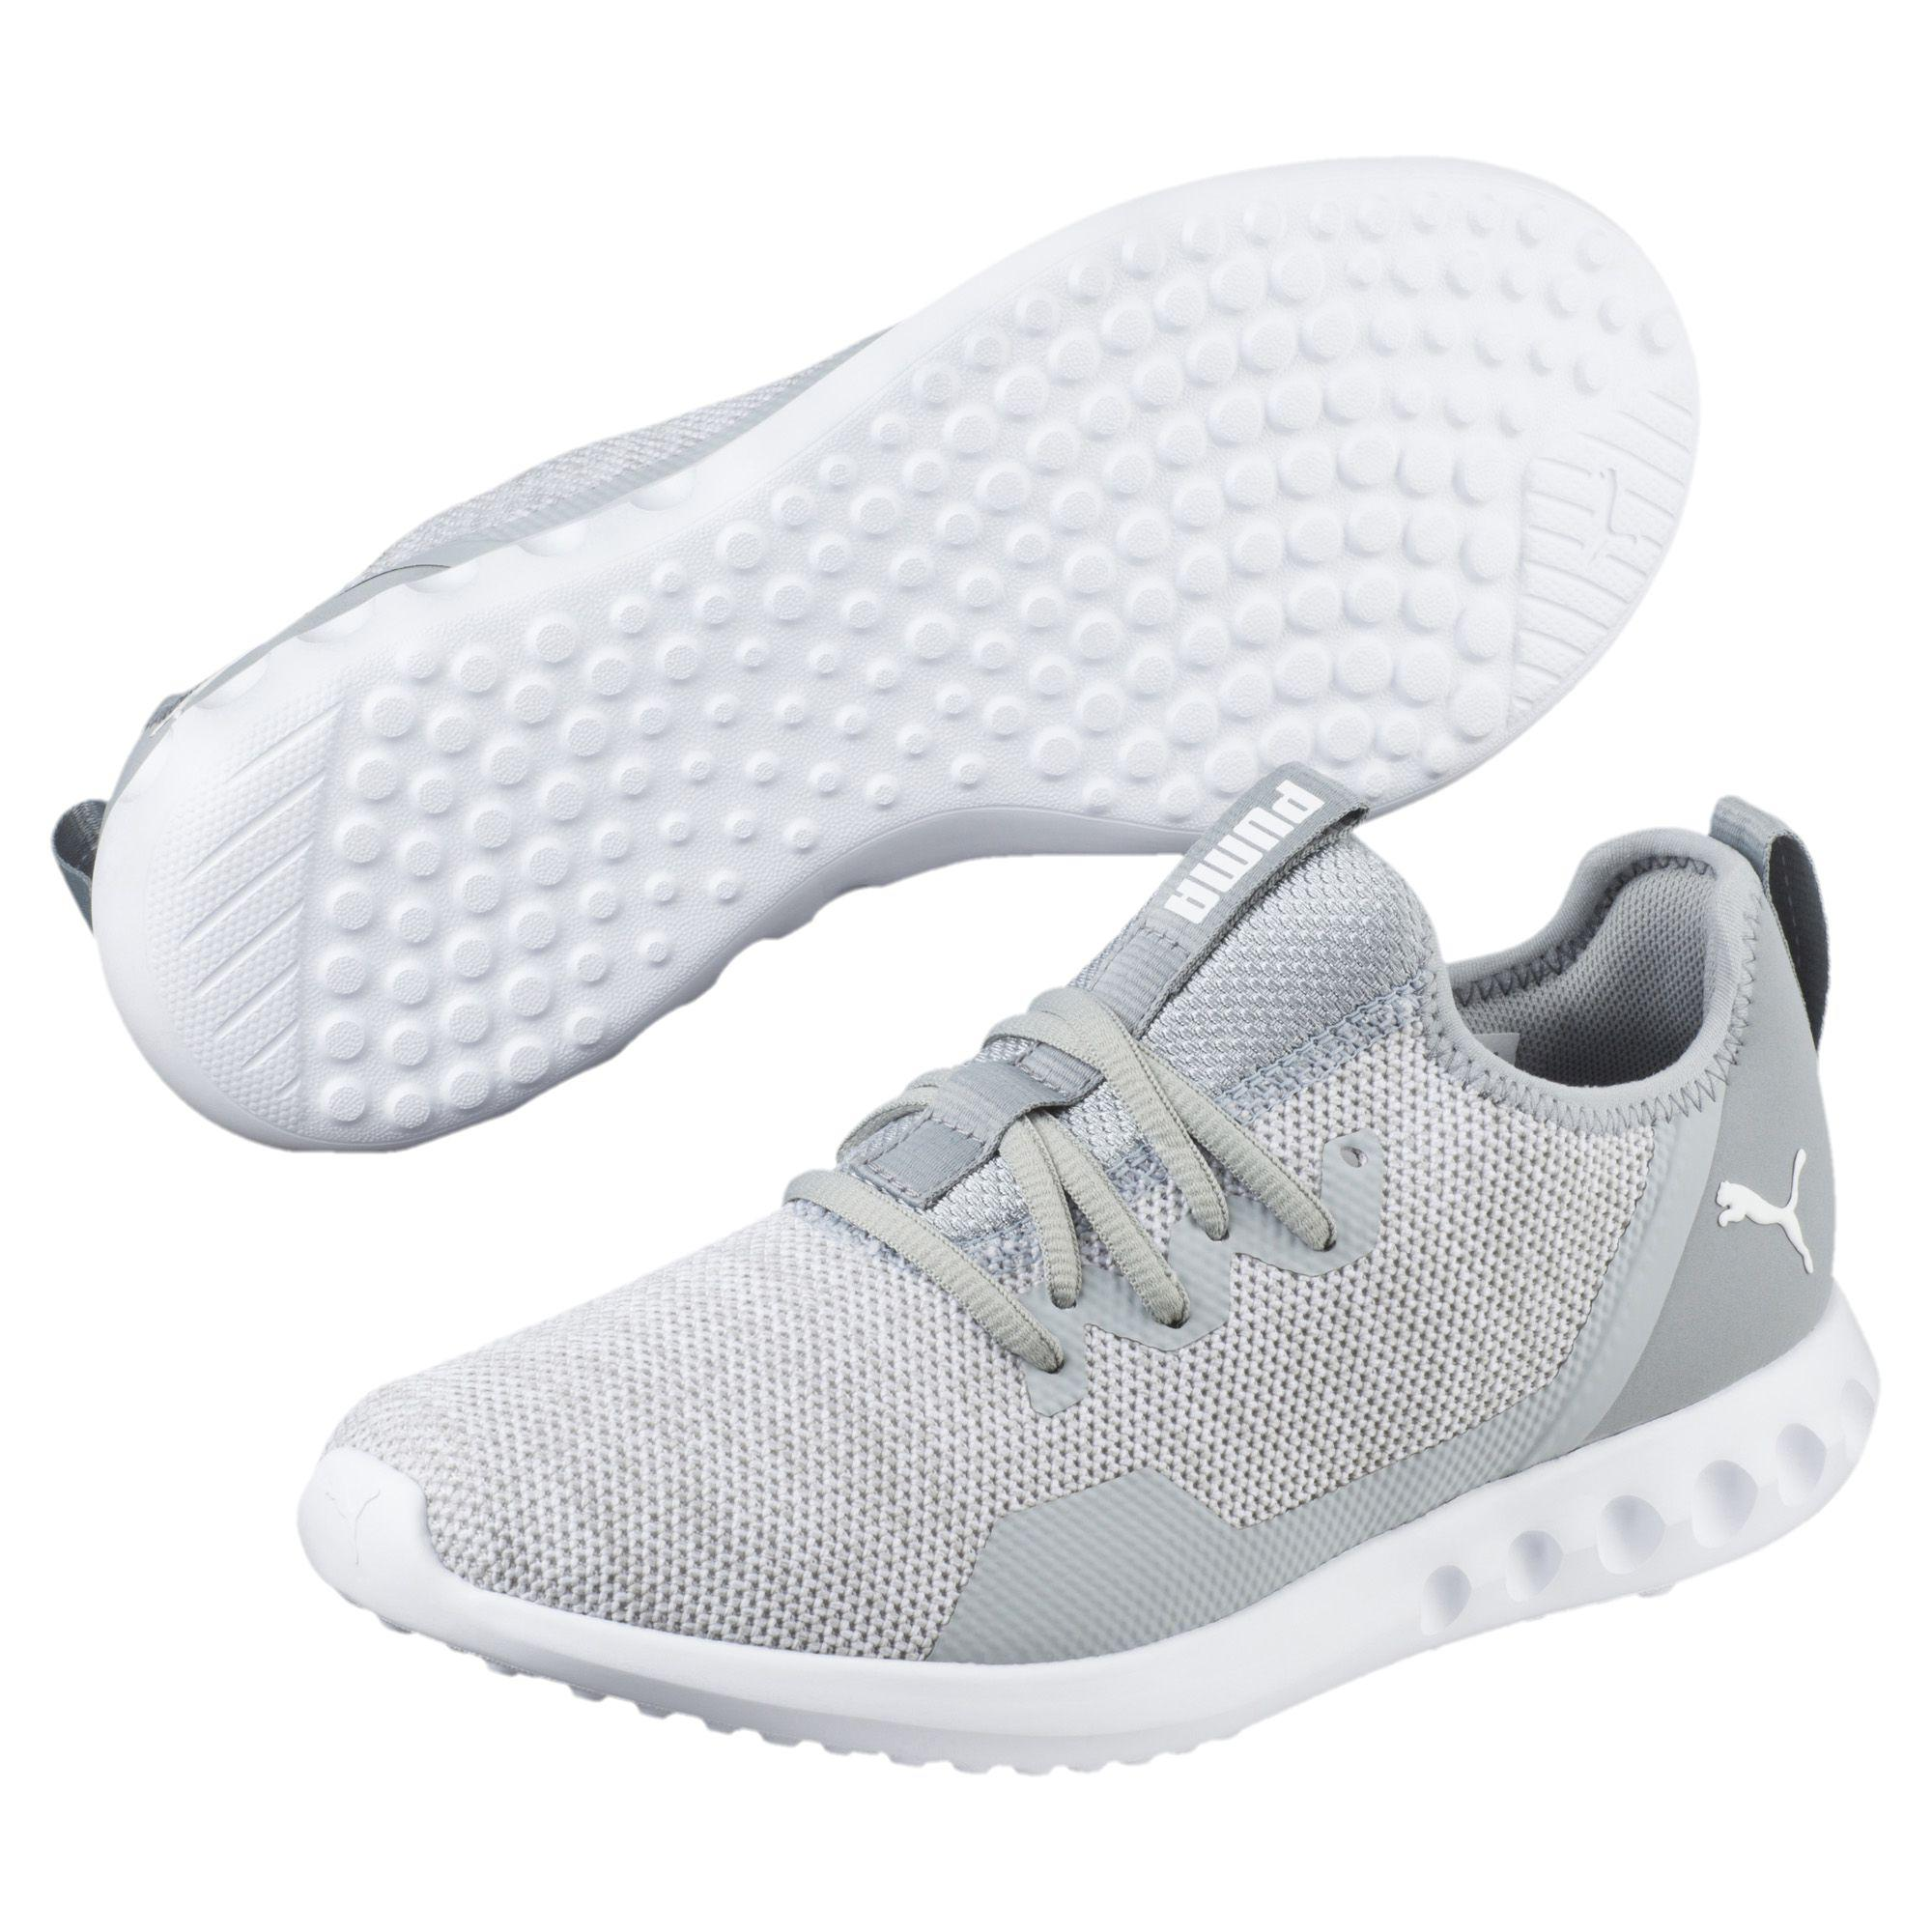 Running Puma Women's In 2 Lyst Shoes Carson Knit White X FAqnwpS